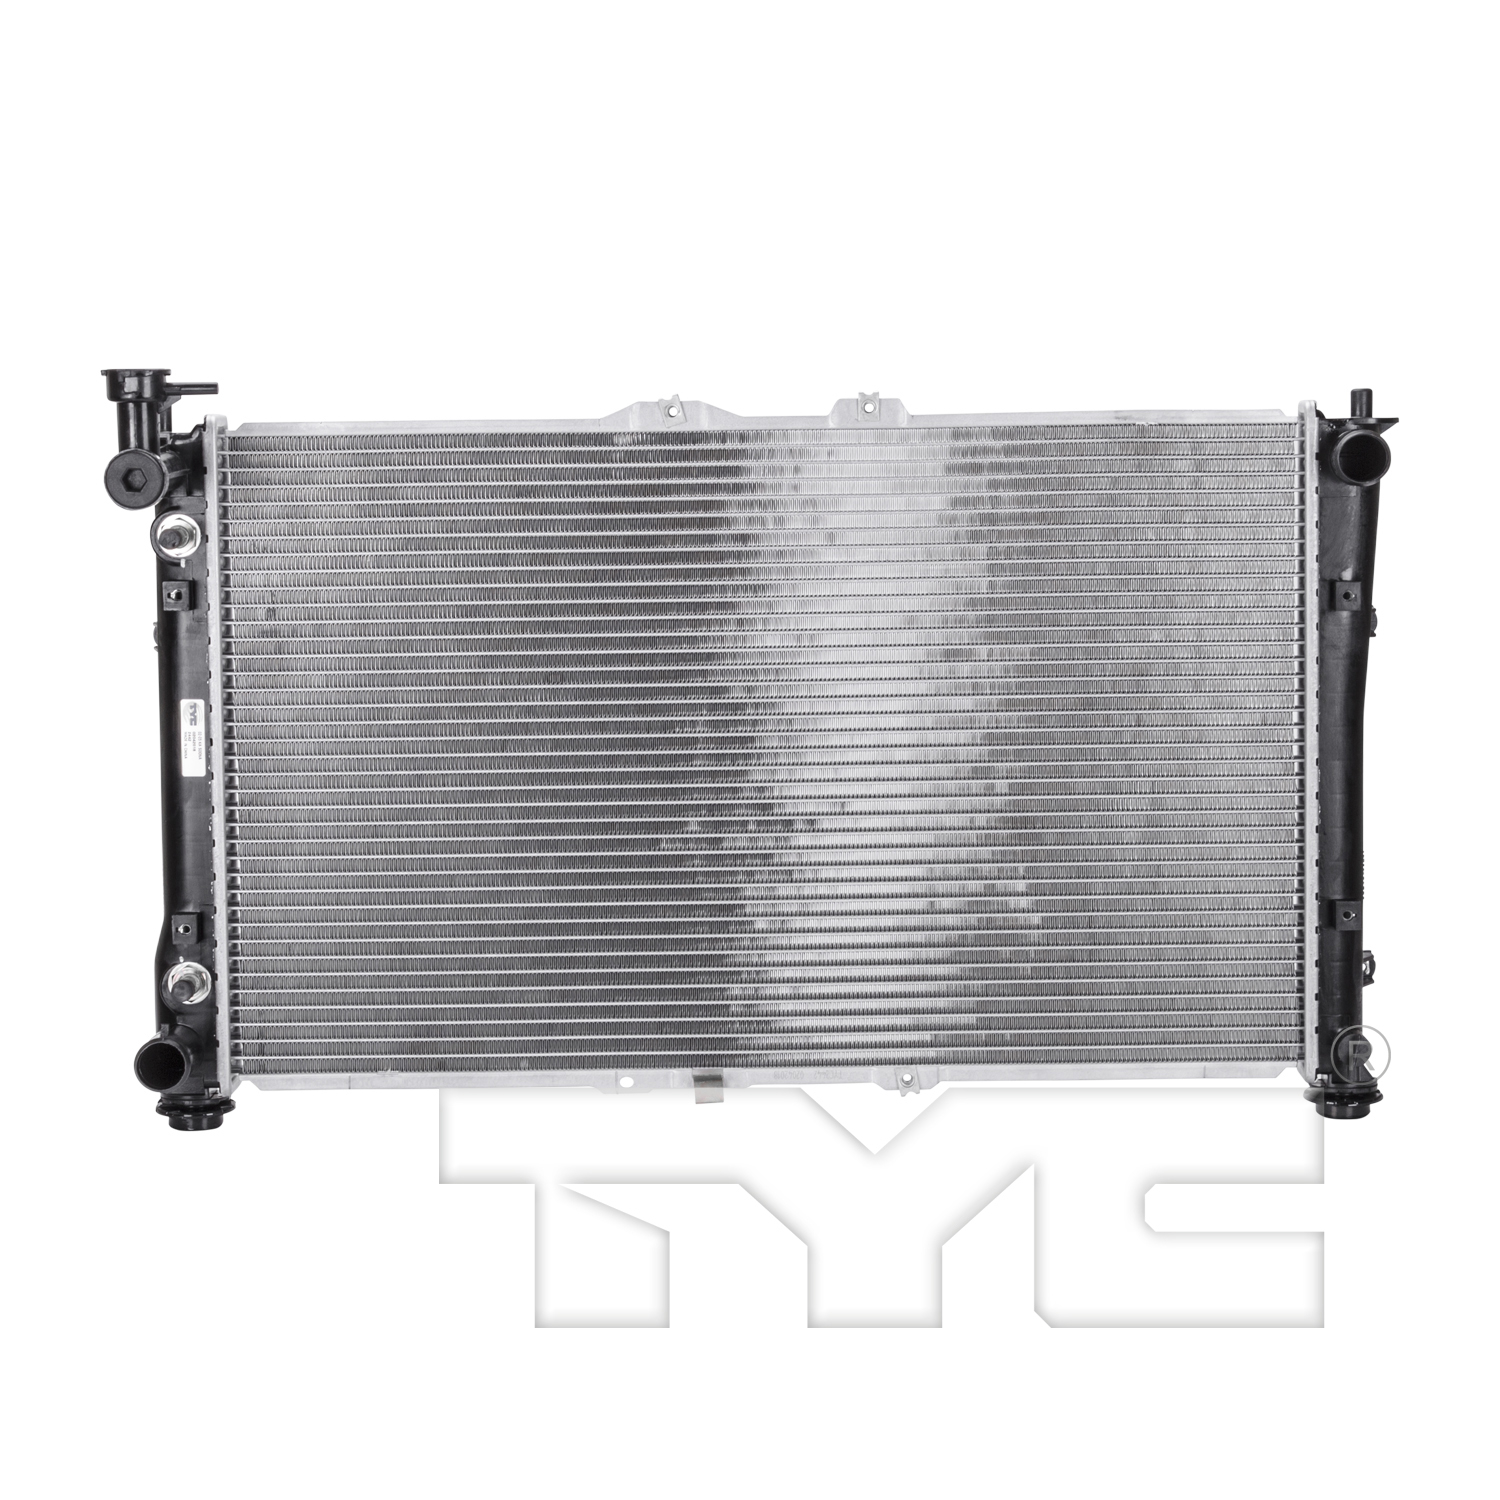 For Sedona 3.5L V6 AT OE Style All Aluminum Core 2442 Replacement Cooling Radiator